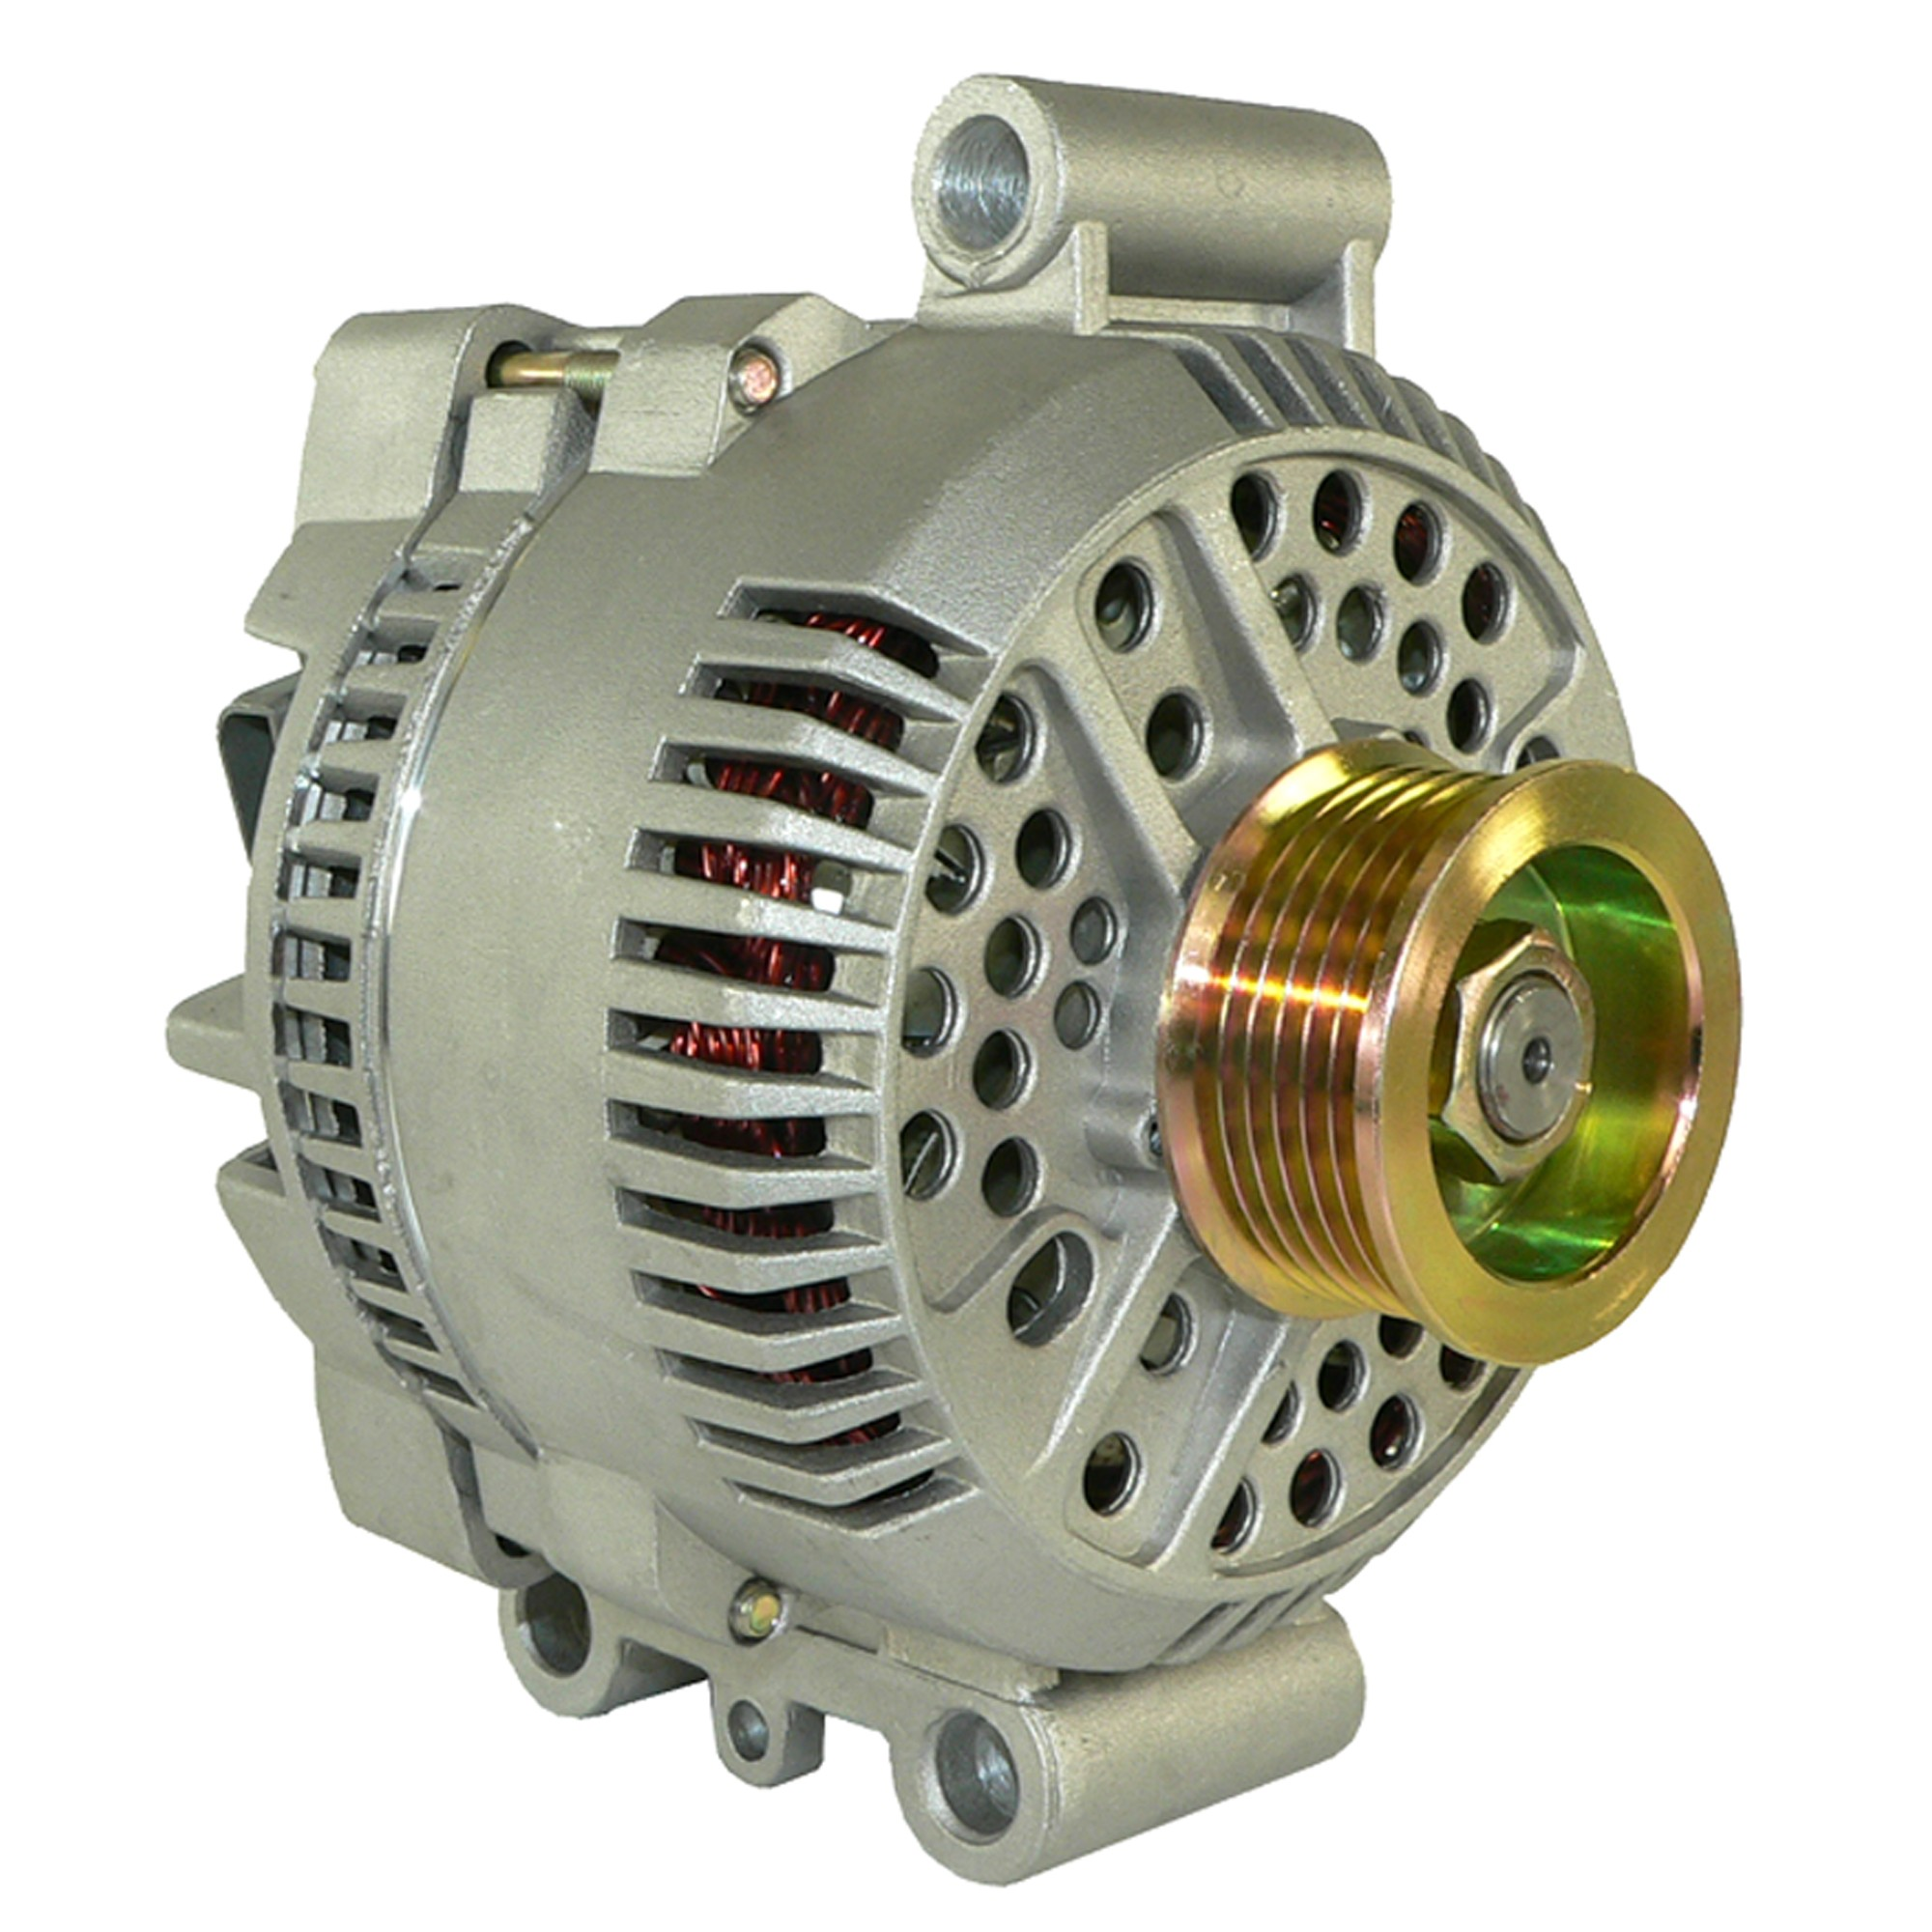 NEW ALTERNATOR 3.0L 3.0 FORD RANGER /& MAZDA B3000 TRUCK 06 07 08 2006 2007 2008